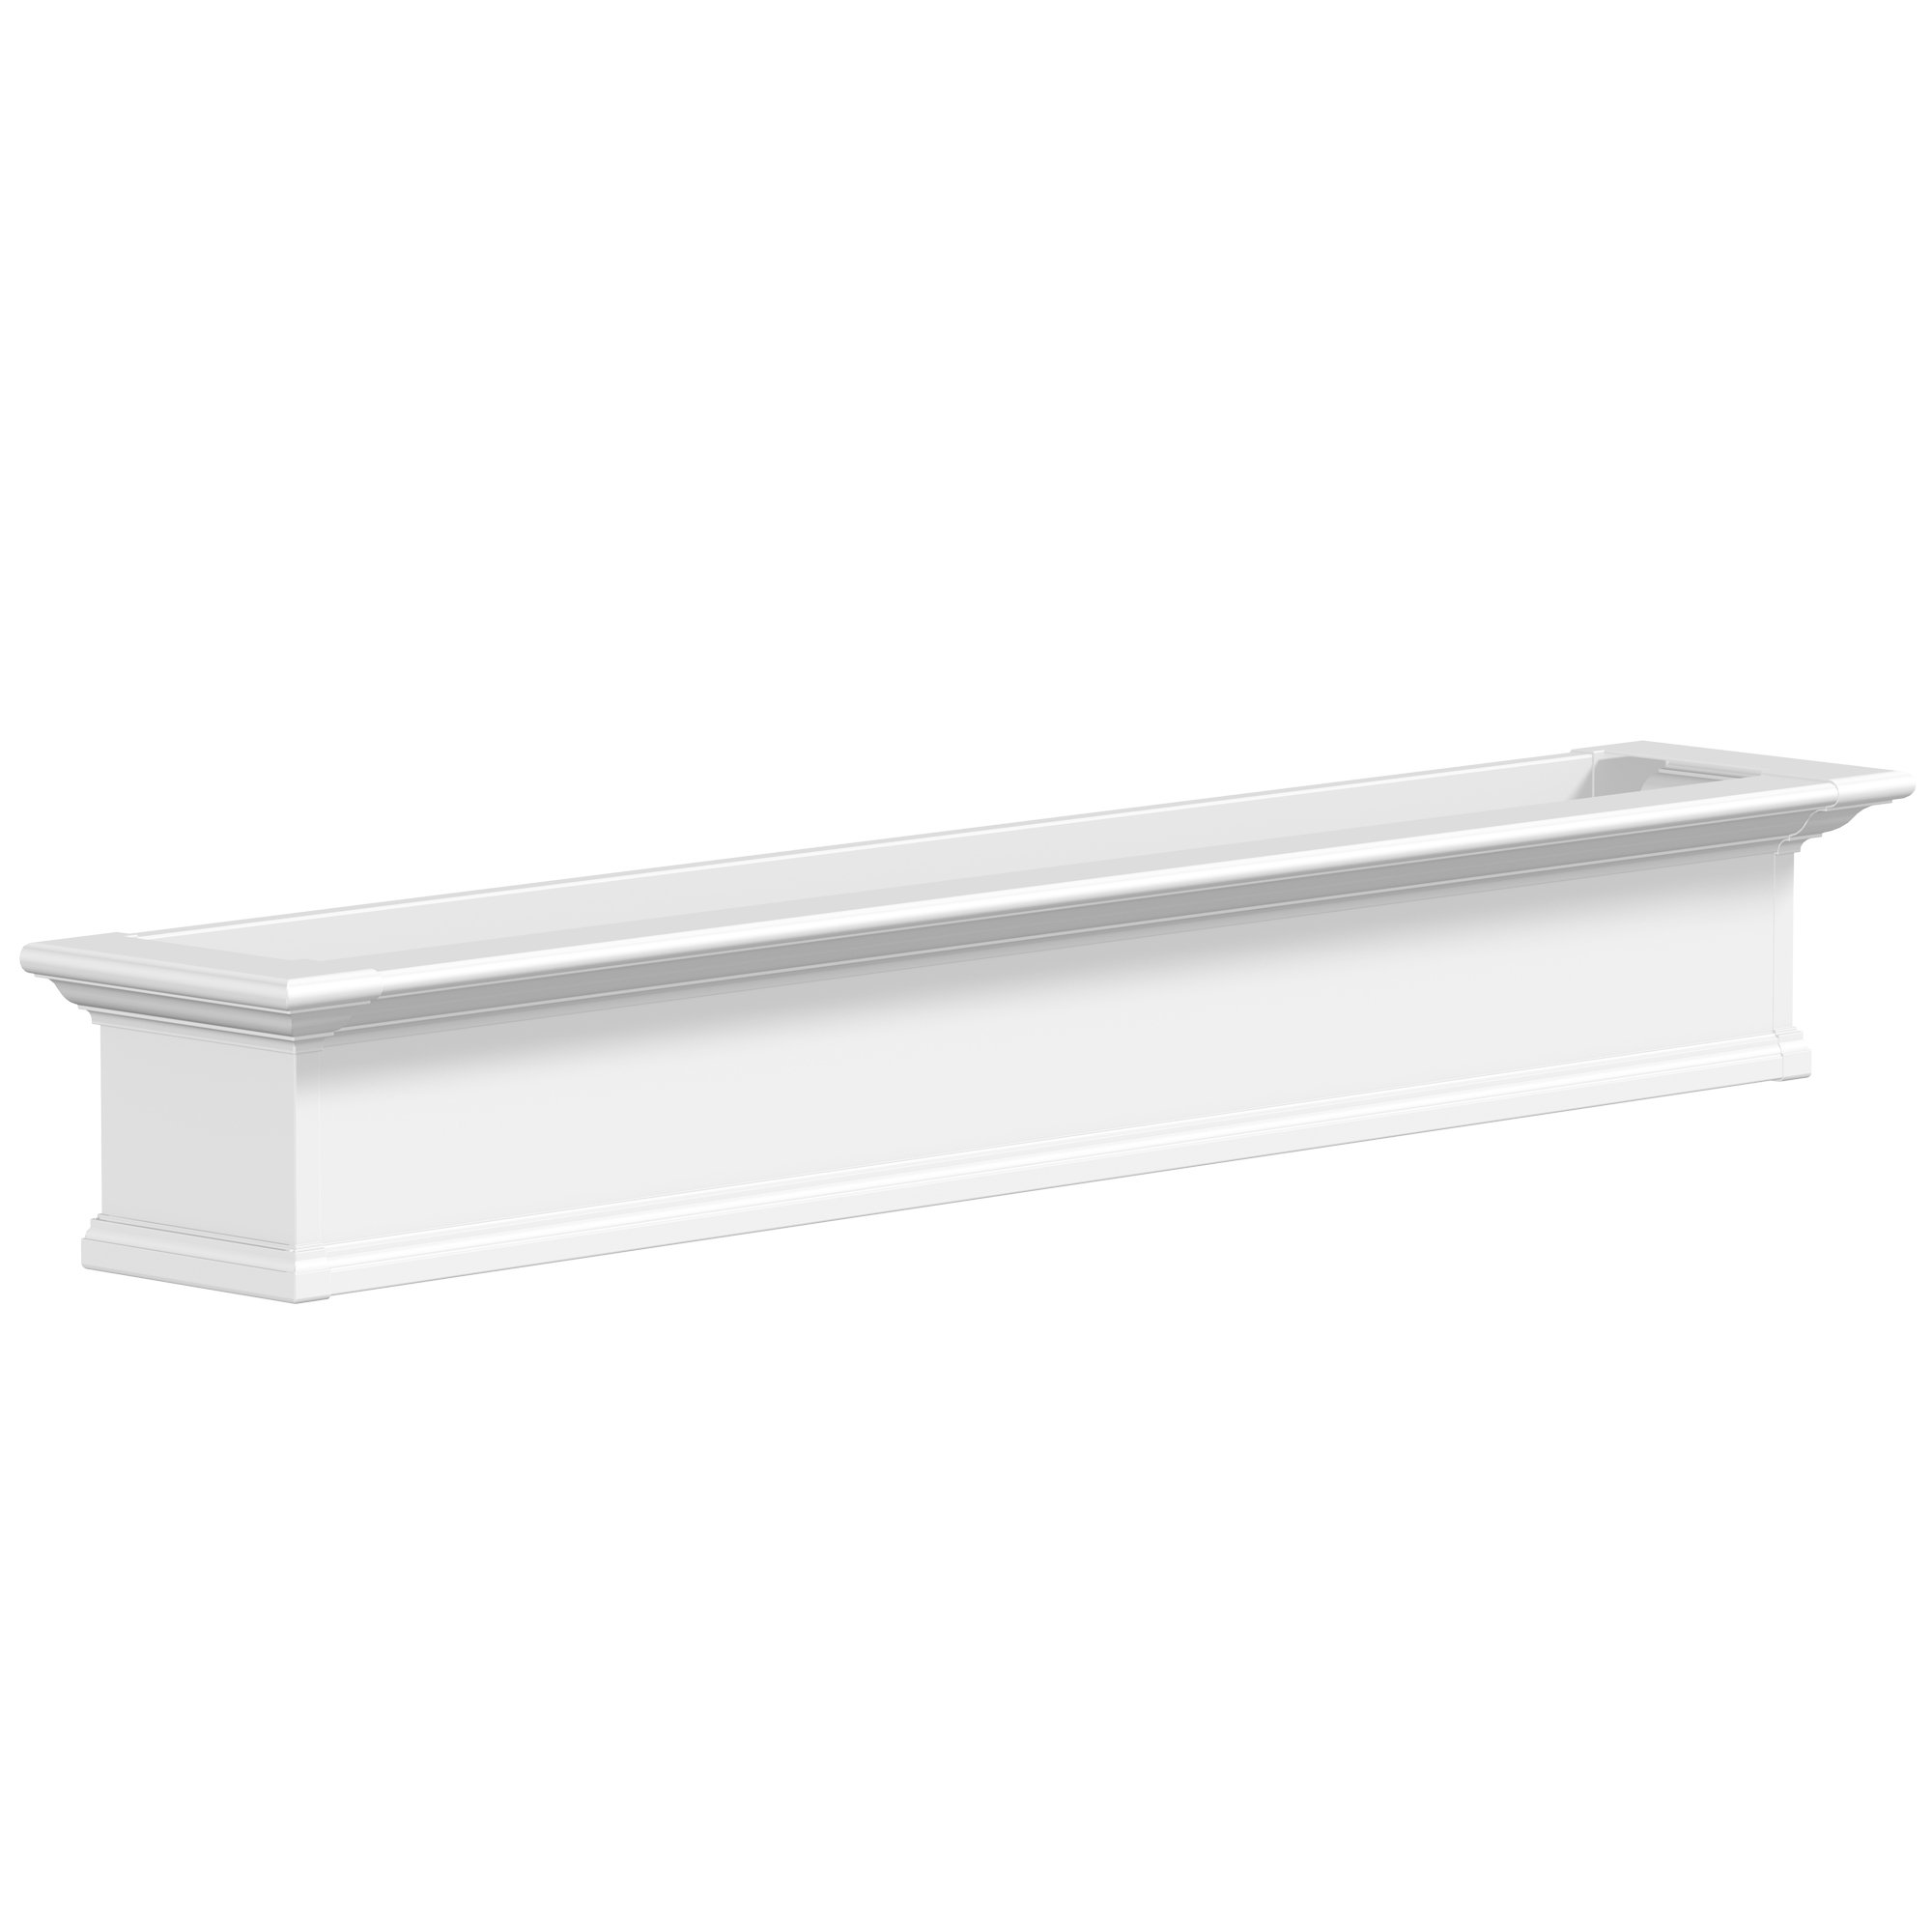 Mayne Yorkshire 4826W Window Box Planter, 6-Foot, White by Mayne